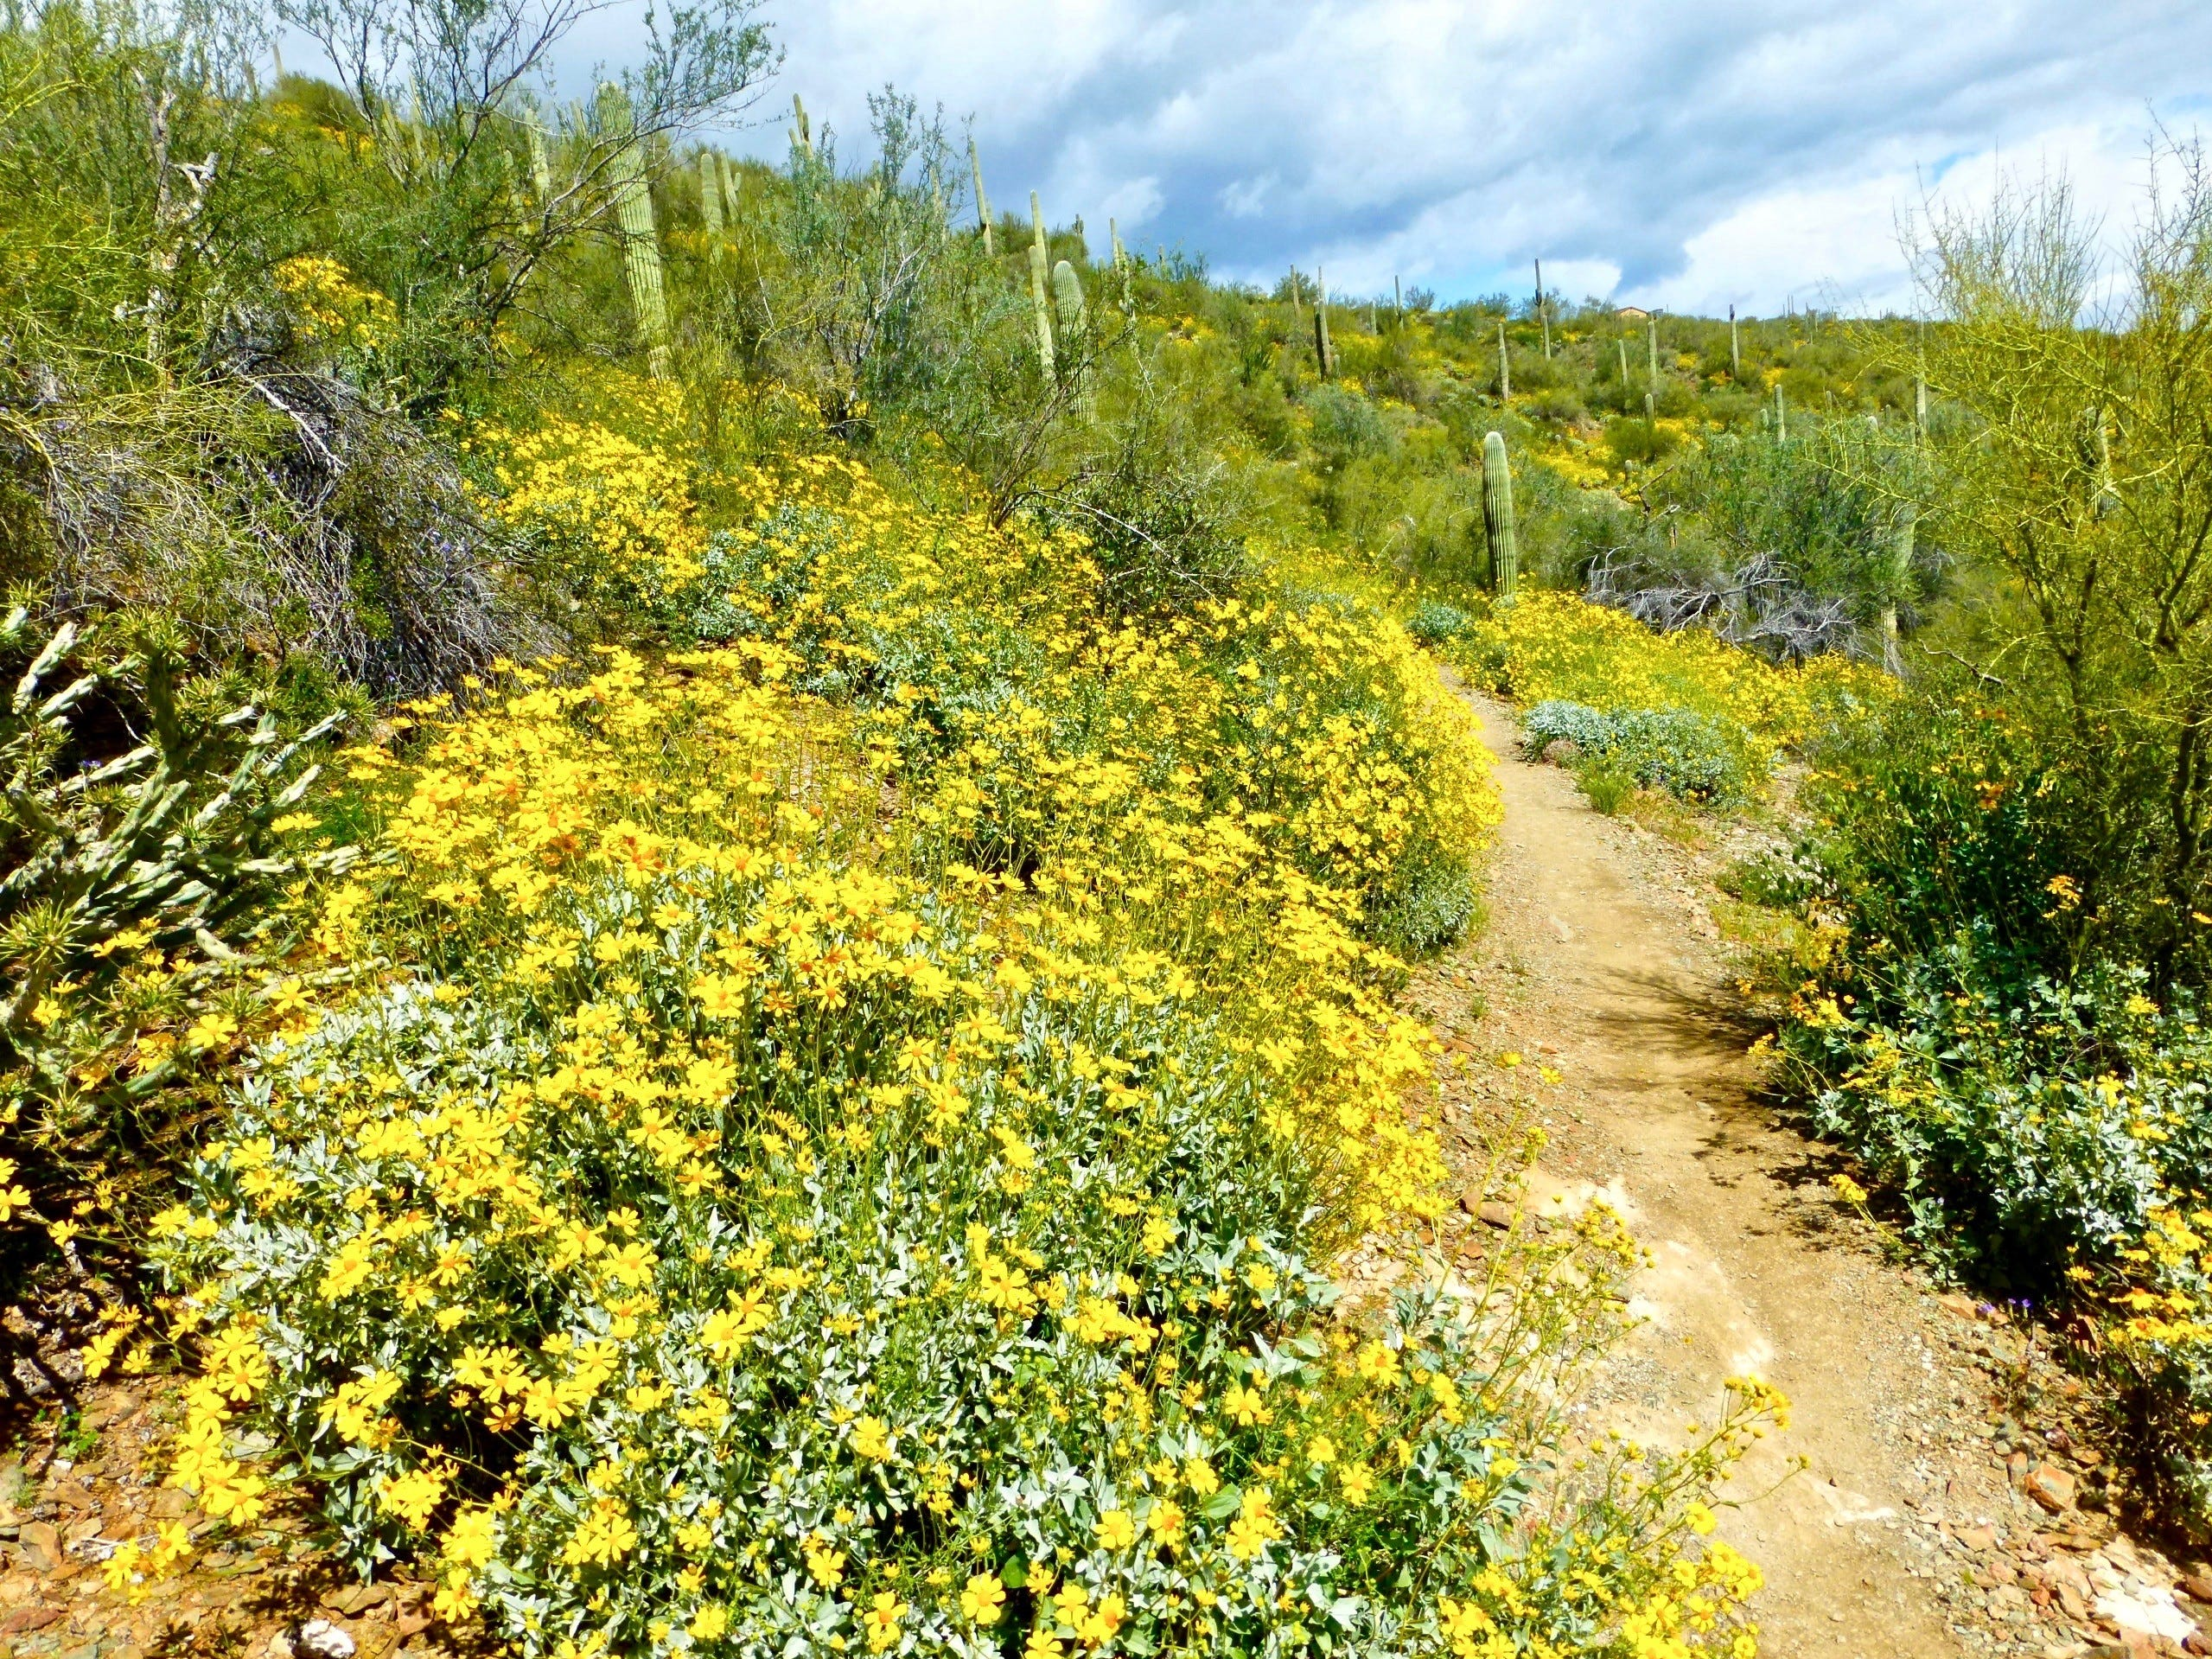 Wildflowers add a splash of color to the Arizona desert in late winter and early spring.